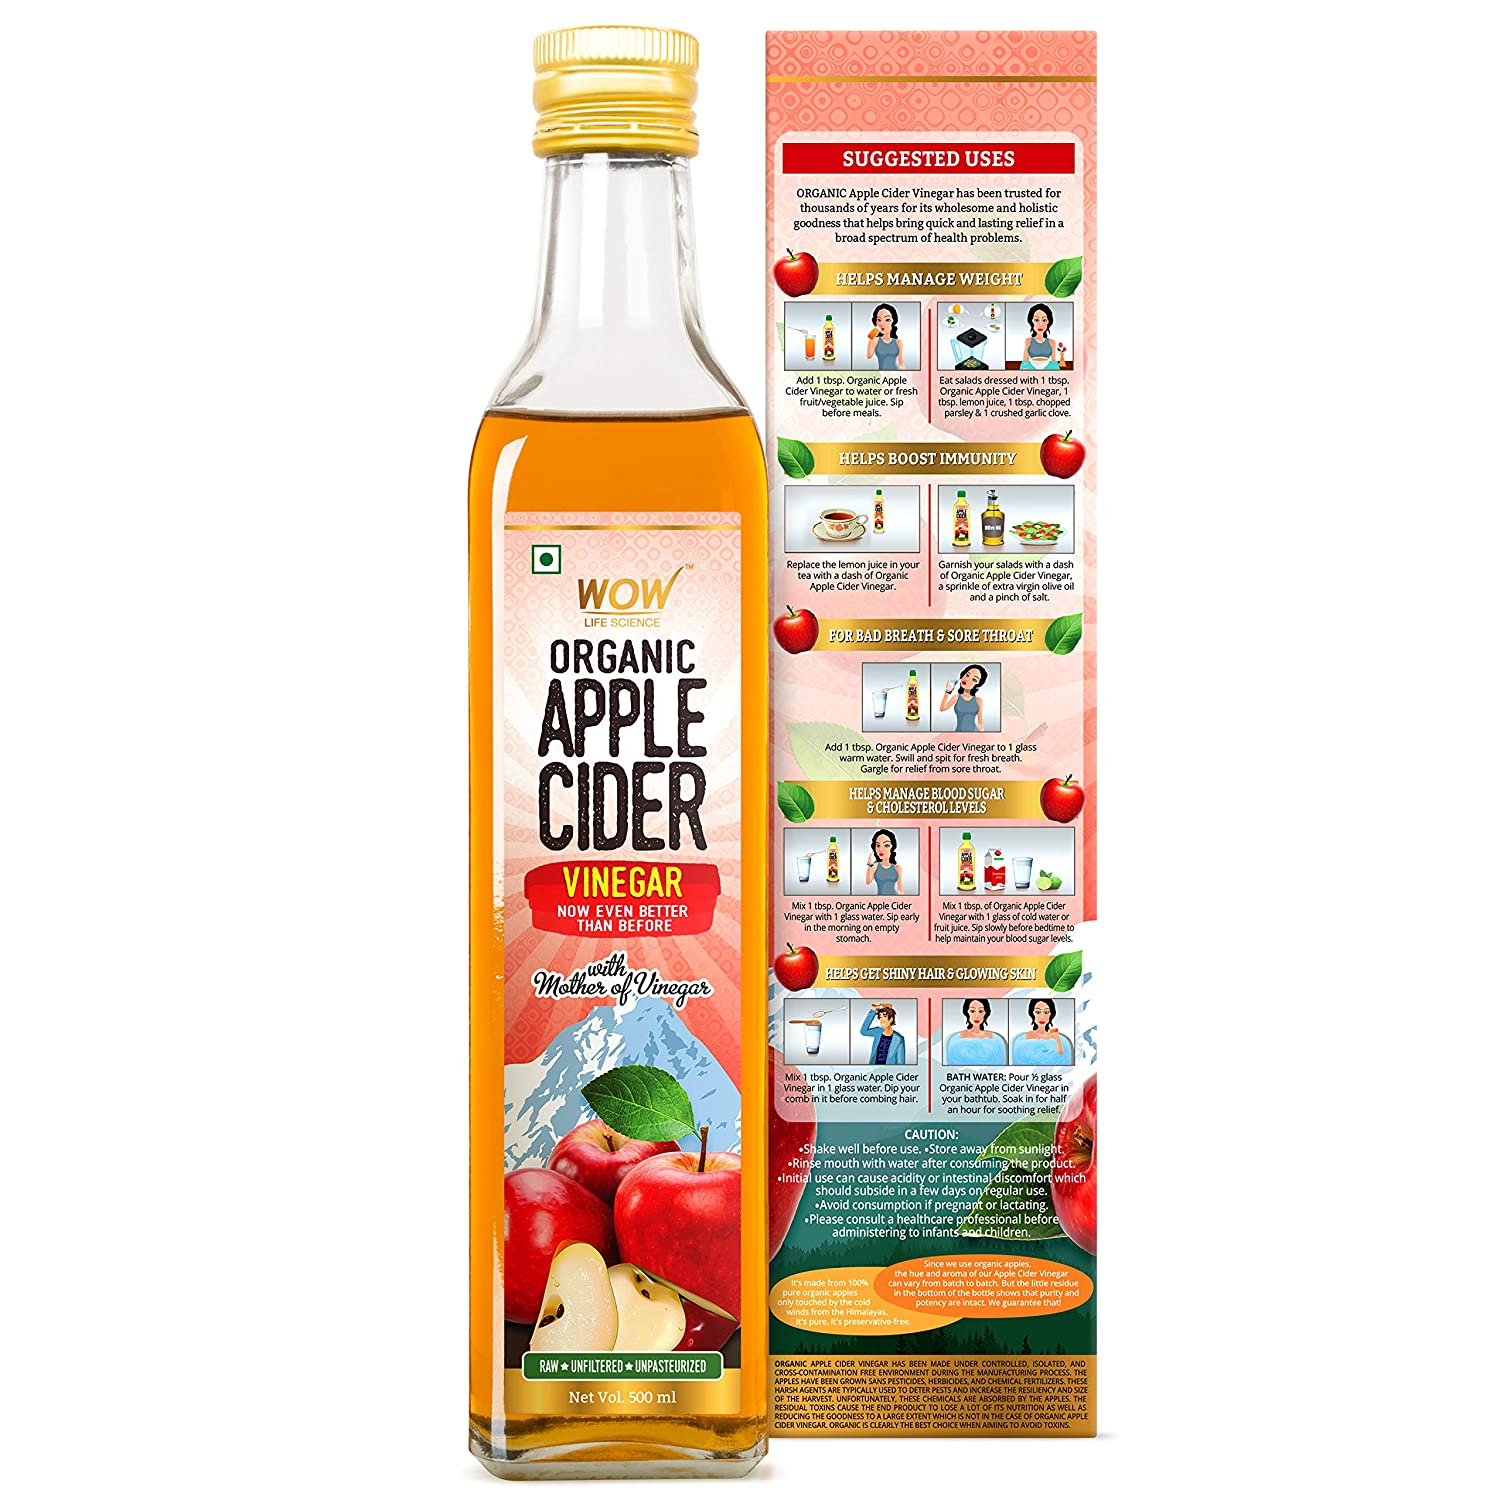 WOW Raw Apple Cider Vinegar - with strand of mother - Not from concentrate (500mL Glass Bottle)